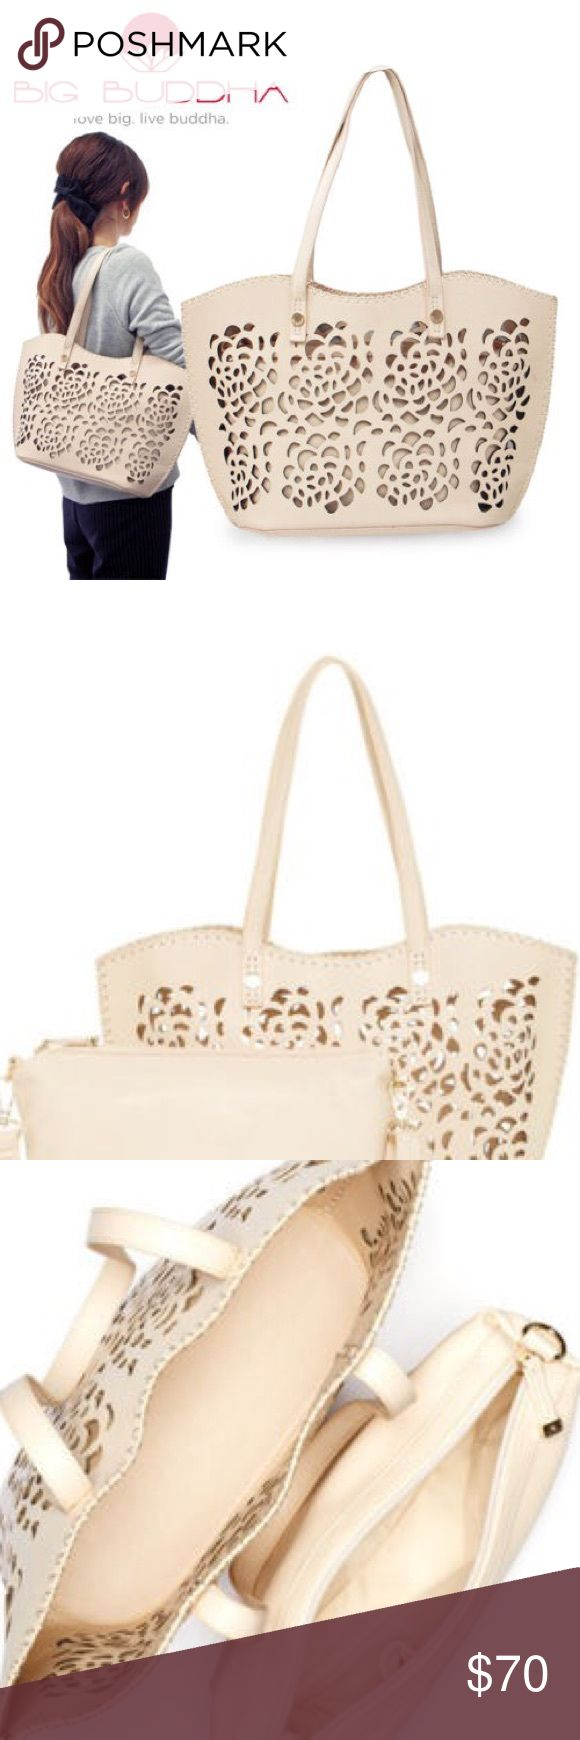 """NWT Big Buddha JLILIANN Bag Ivory Floral Laser Cut This is for New with Tag, Big Buddha JLILIANN Bag, Vegan Leather Floral Perforated 2 in 1 bag with Ivory color. Floral laser cut out detailed, size is about 16.5""""x 11""""x5"""". Comes from pet free/smoke free clean home! Thanks for looking, have a great day! Big Buddha Bags Totes"""